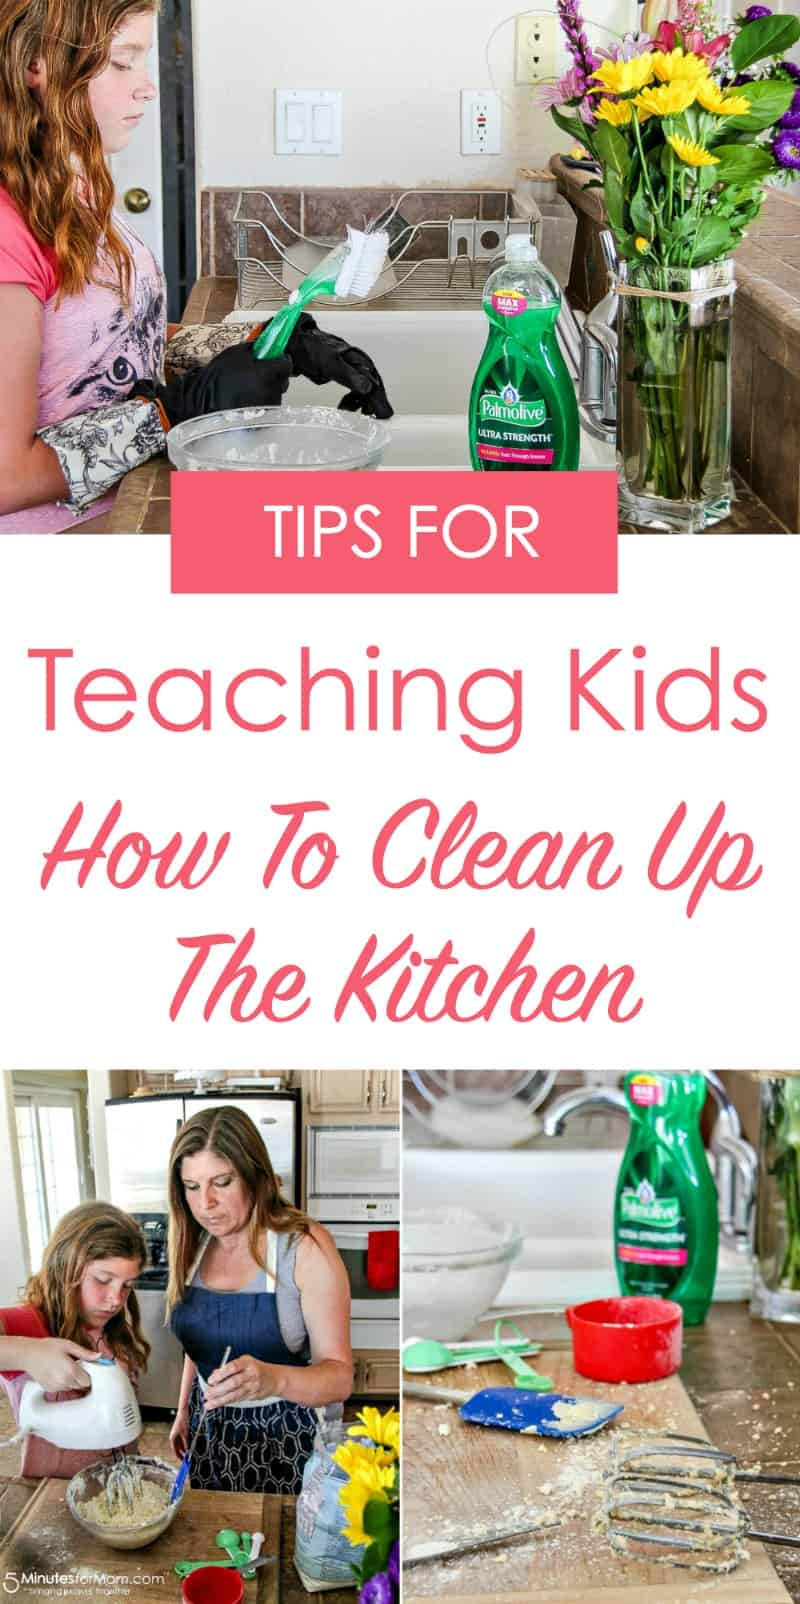 Tips for teaching kids how to clean up the kitchen